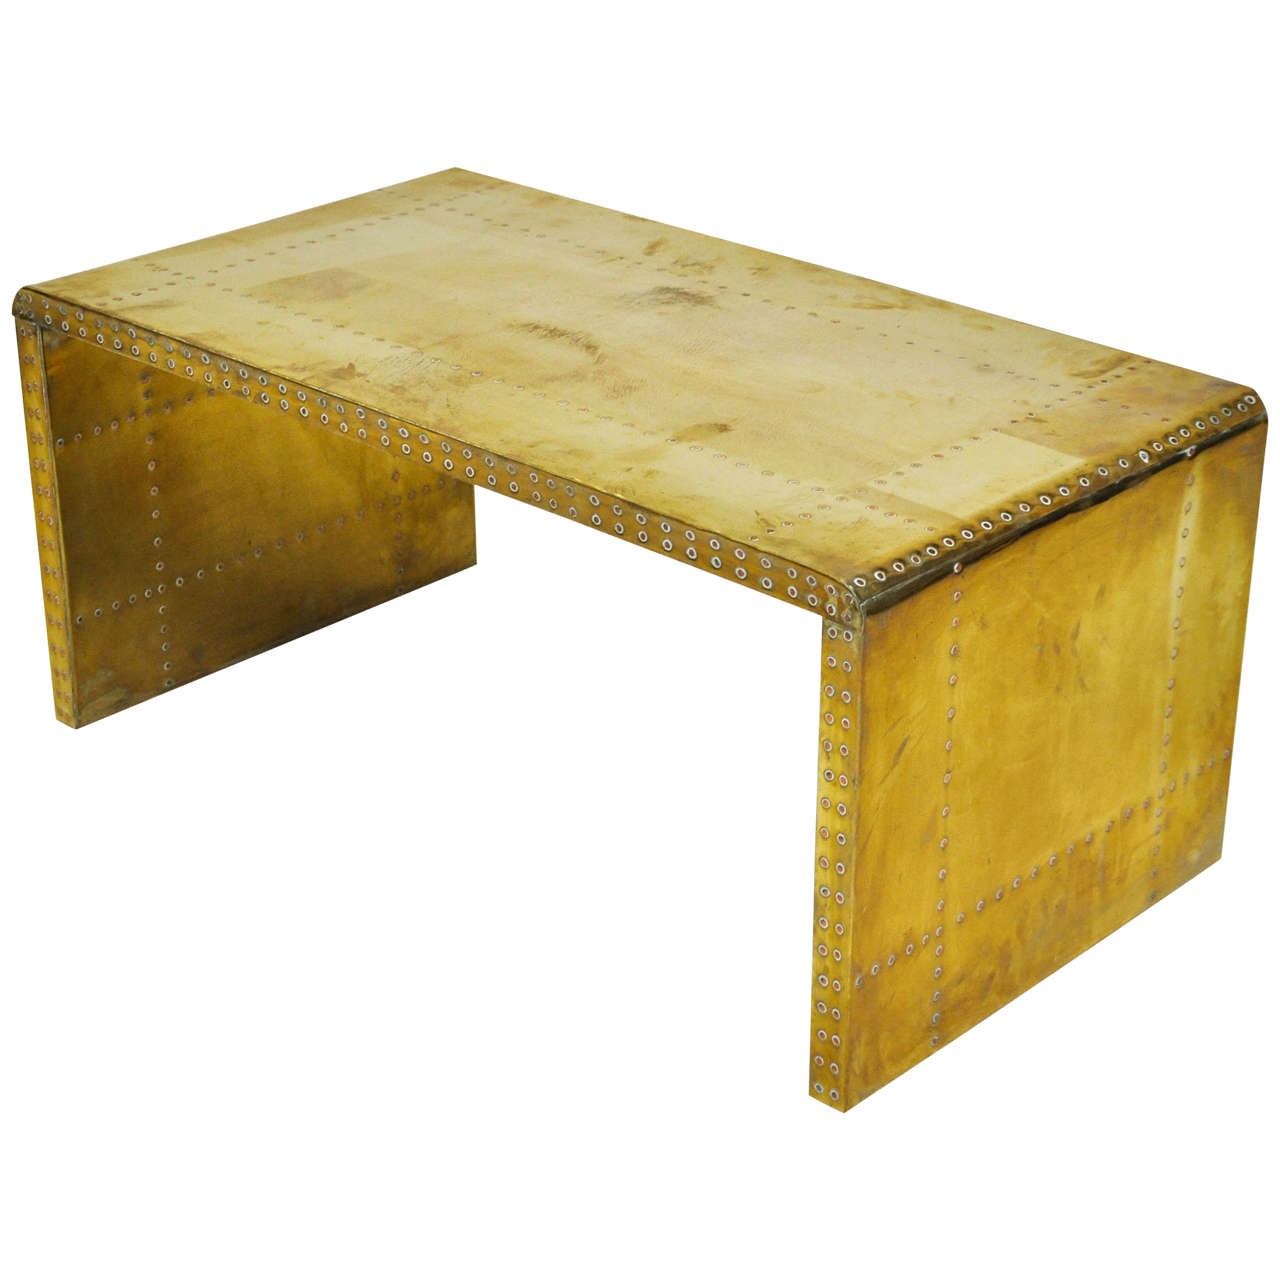 Small Modern Coffee Table 1960s For Sale At 1stdibs: Sarreid Brass-Clad Coffee Table For Sale At 1stdibs